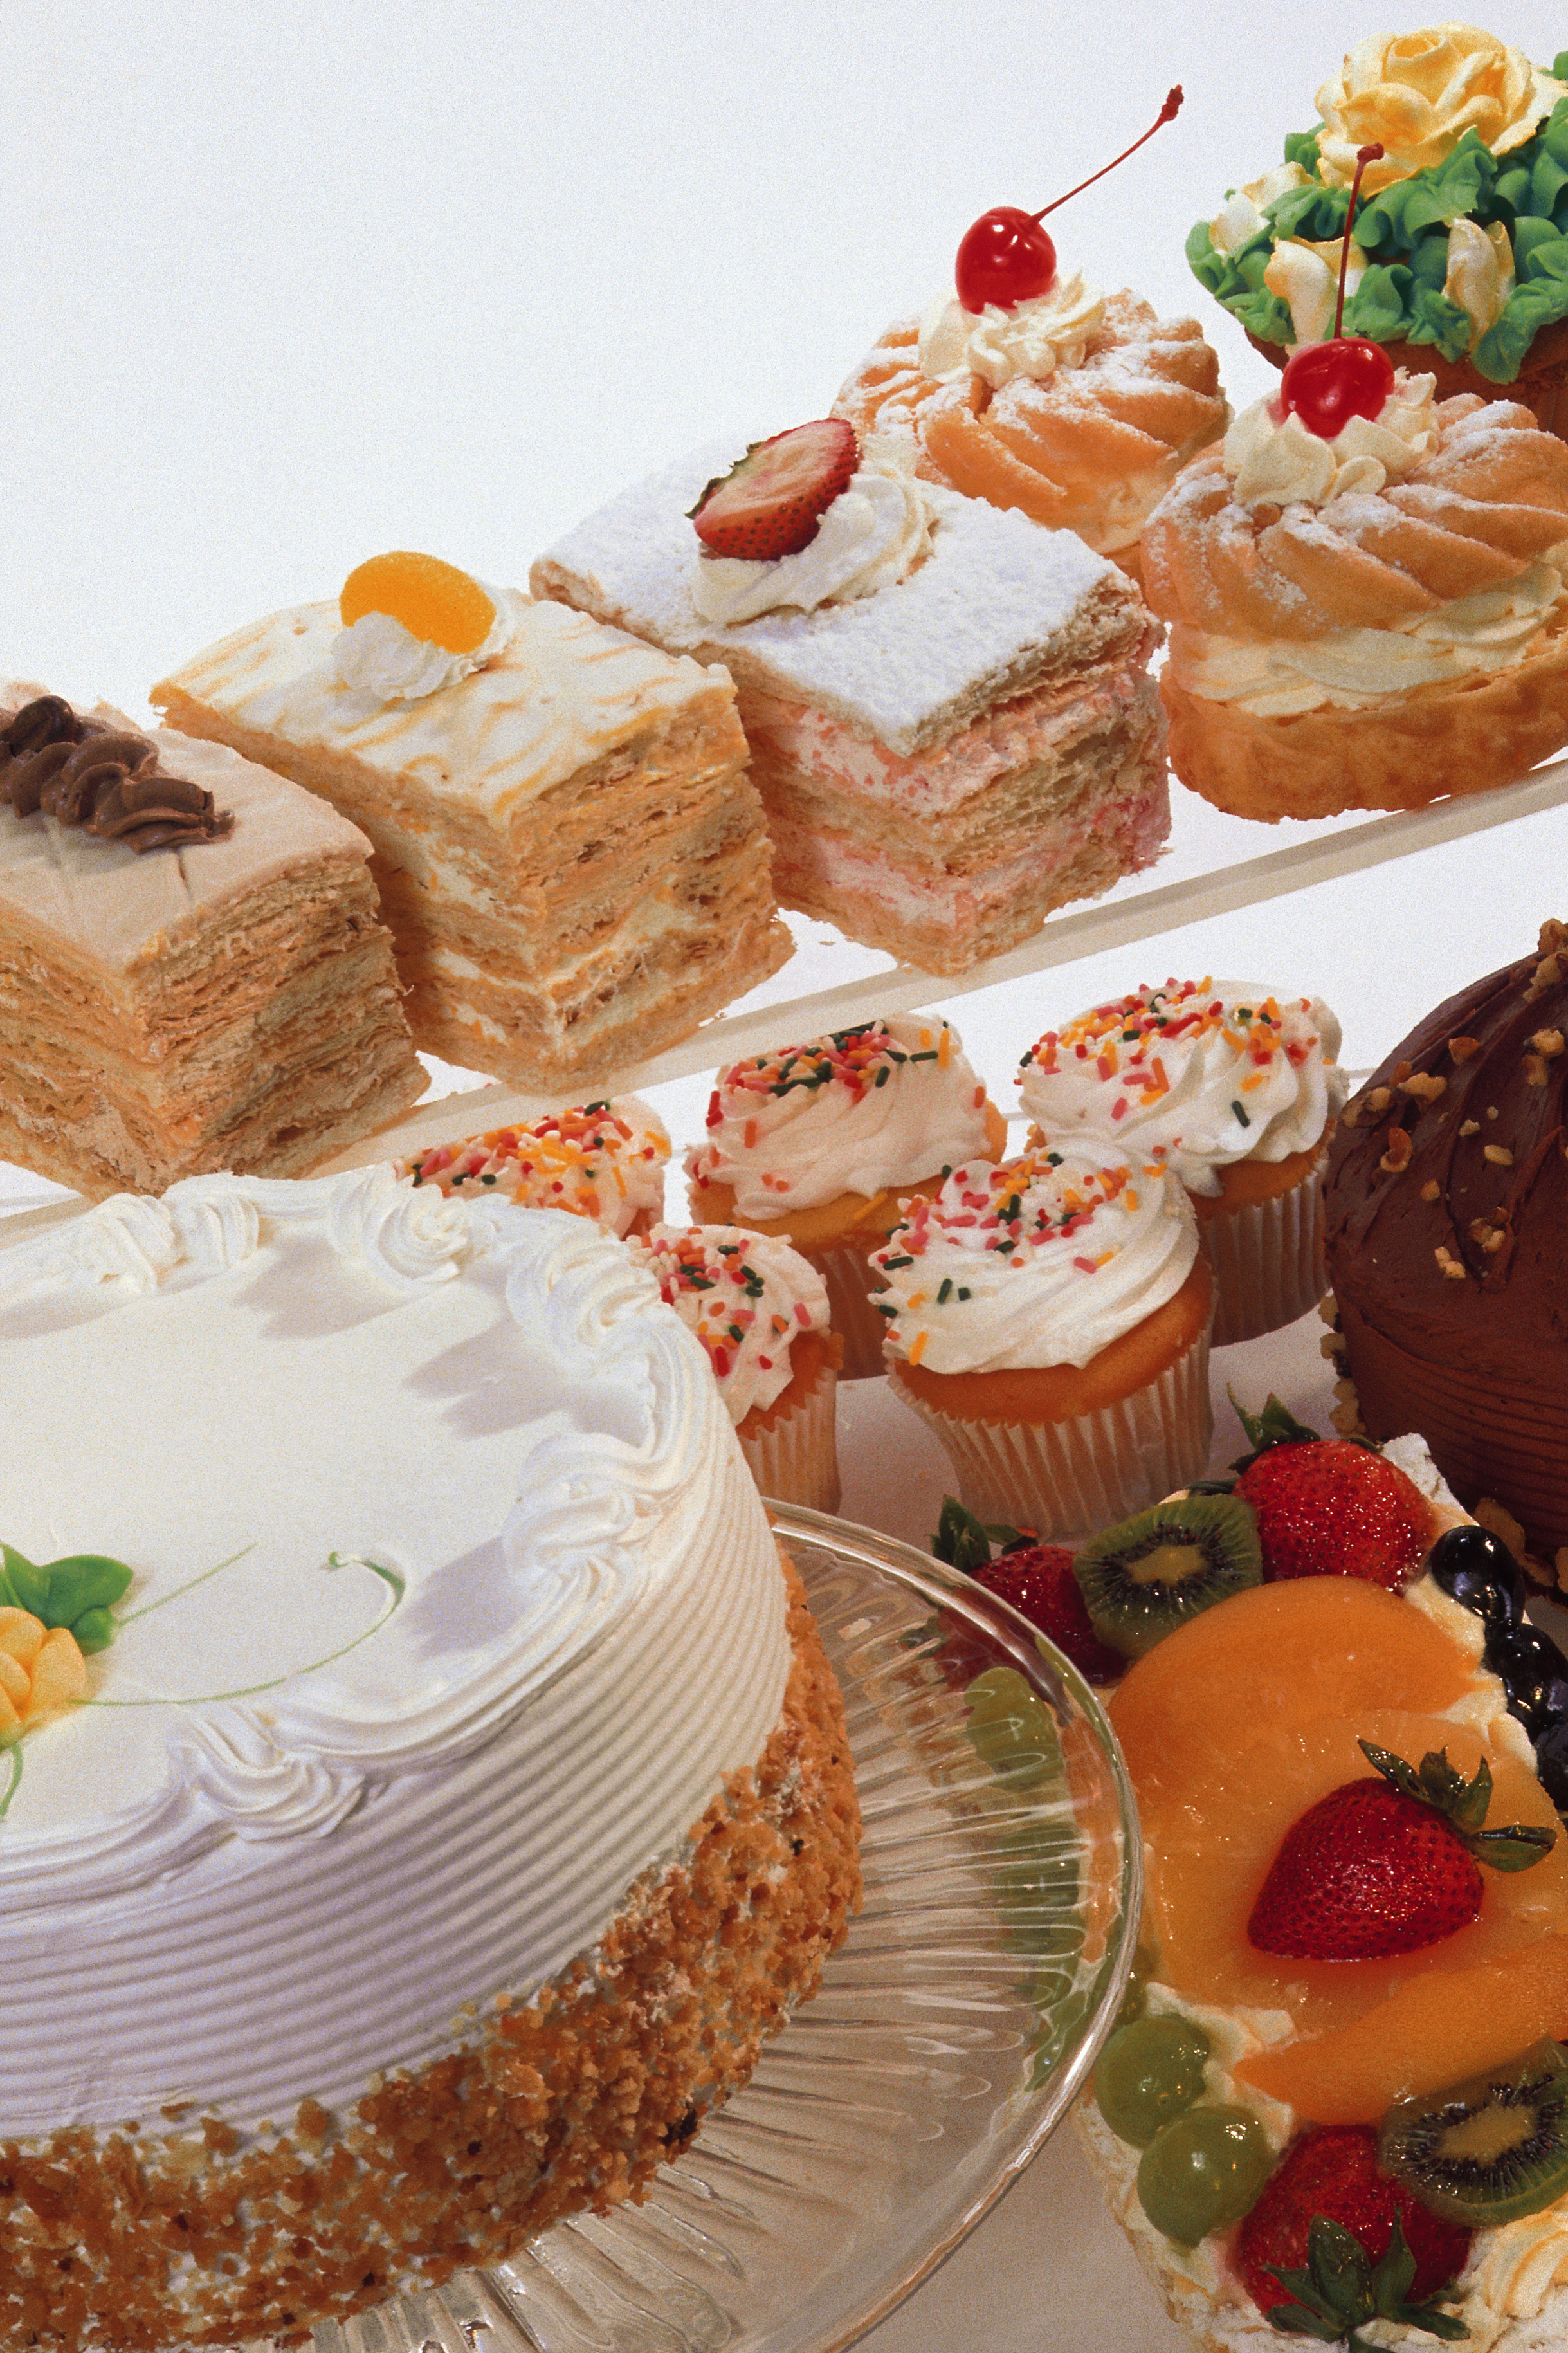 How to Price Cakes to Sell | Bizfluent